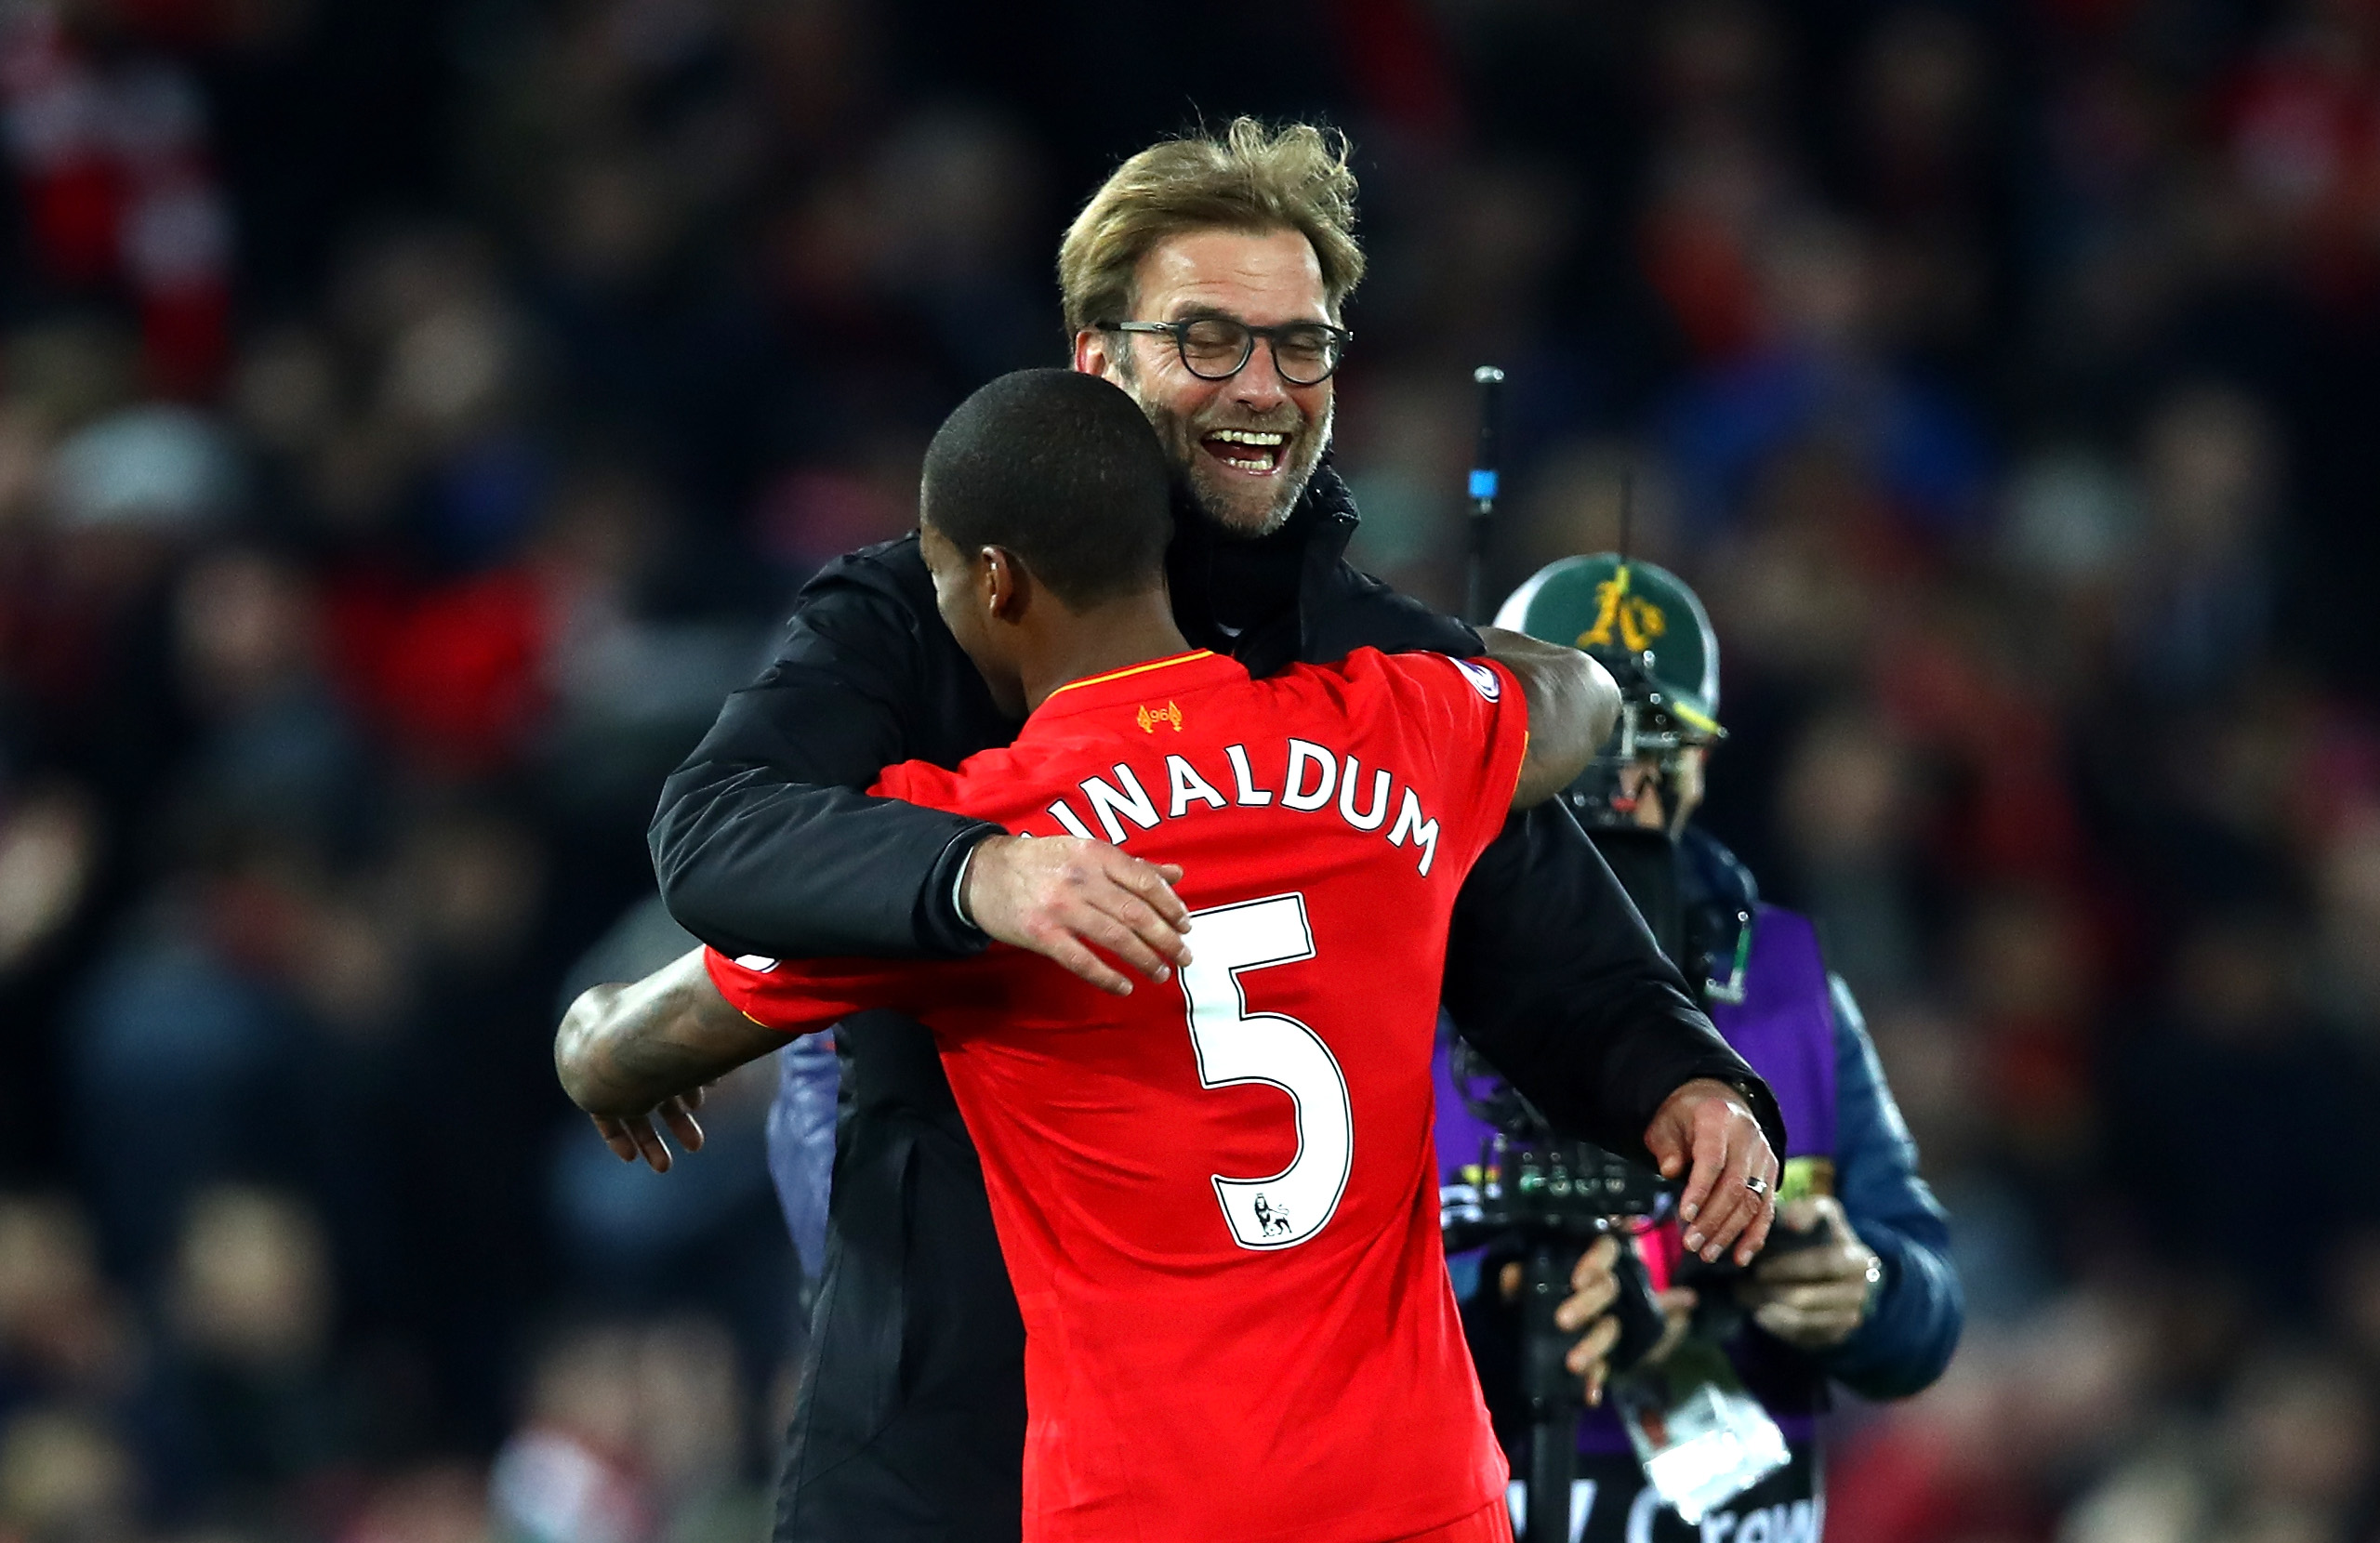 One of Klopp's most-trusted lieutenants, Wijnaldum could be on his way out (Photo by Clive Brunskill/Getty Images)